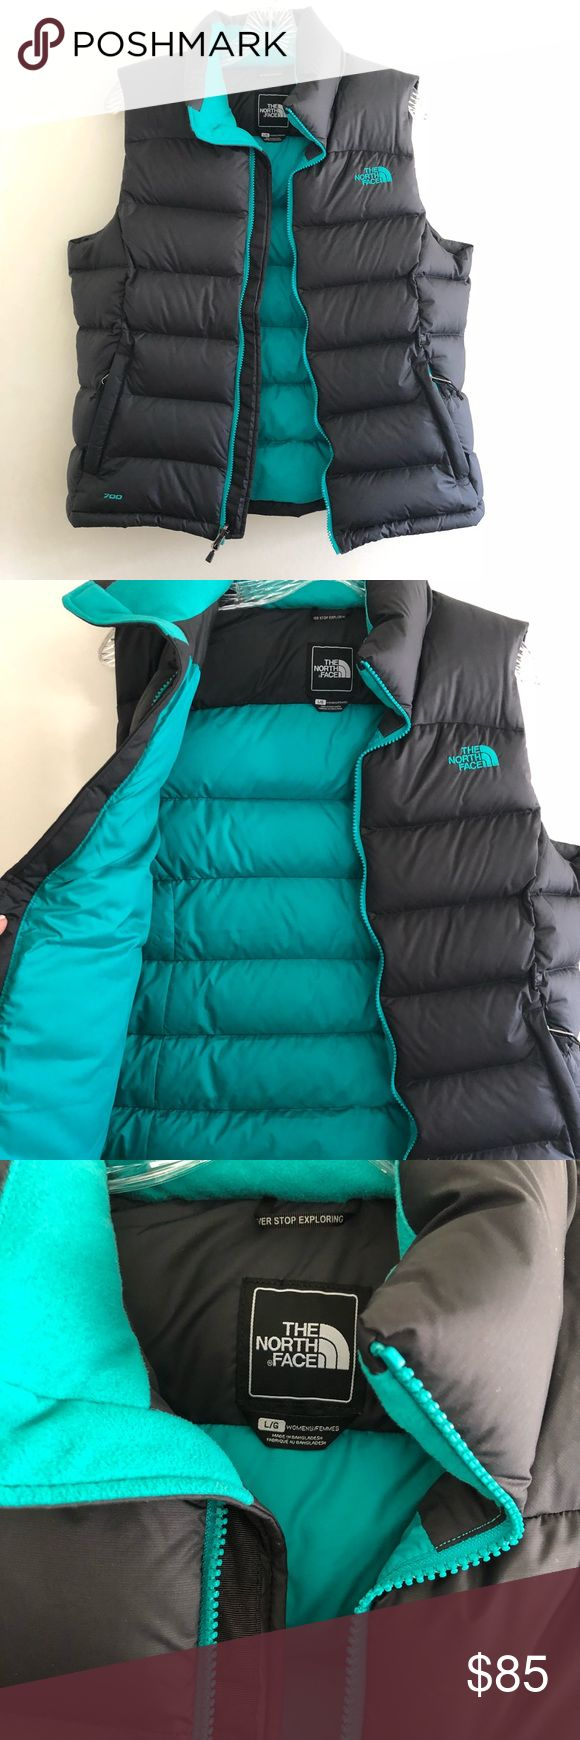 The North Face Nuptse Woman's Puffer Vest size L. The North Face Nuptse Woman's Puffer Vest in size Large. The outside is black with a teal greenish interior. Very soft and in excellent condition. The North Face Jackets & Coats Vests